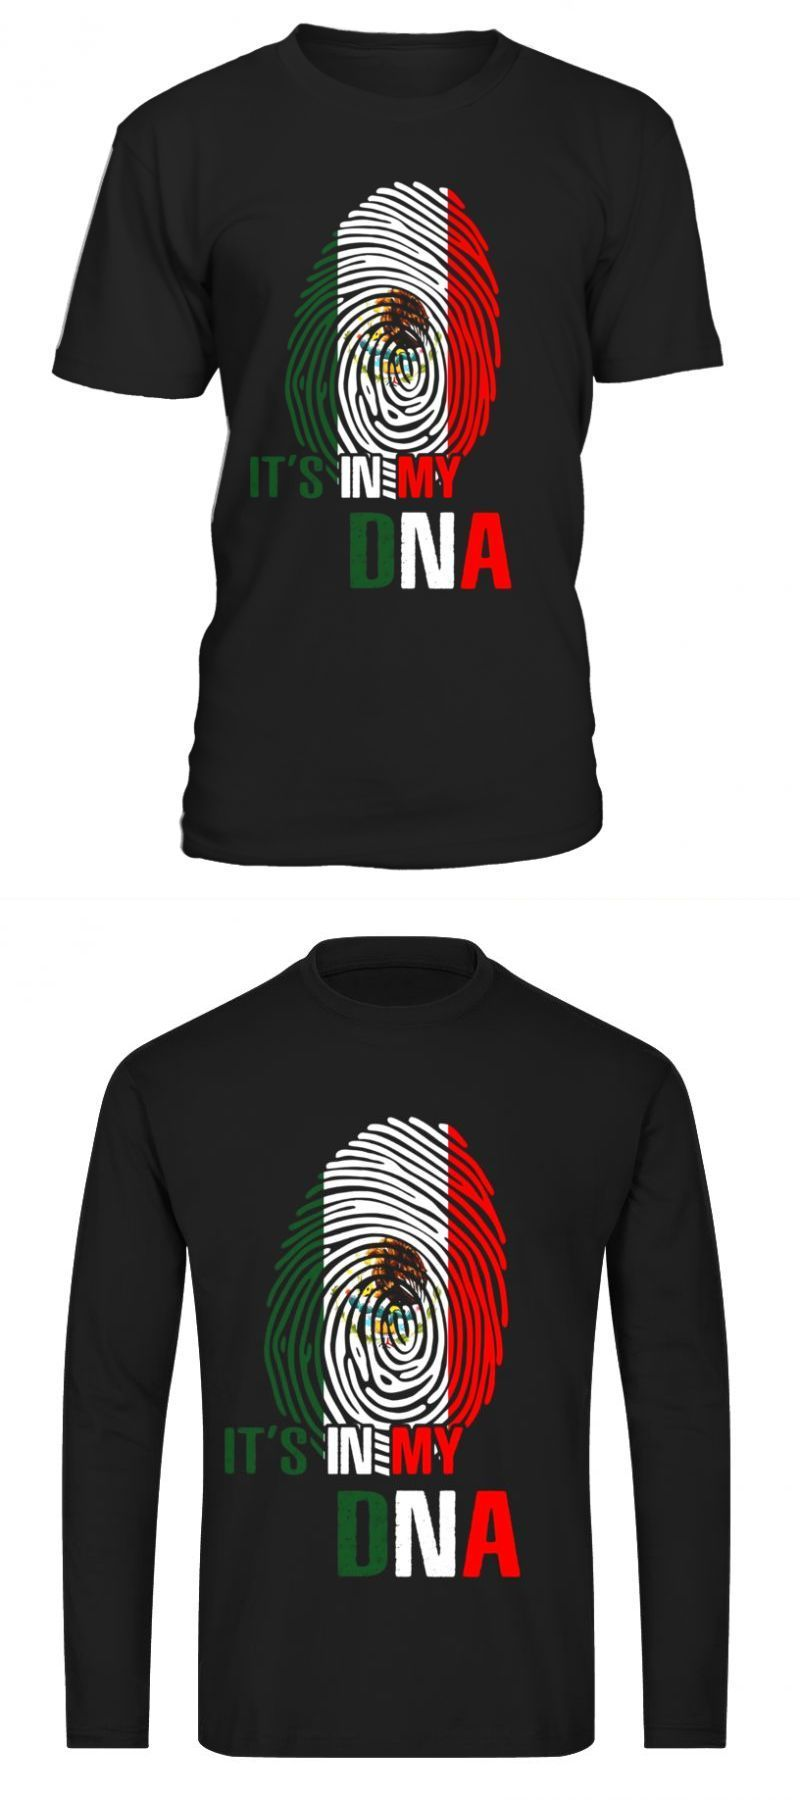 6a05ebf1f85a Wearing t shirt under basketball jersey it s in my dna - mexico t-shirt  marshall basketball t shirt  wearing  shirt  under  basketball  jersey  it s   in  my ...